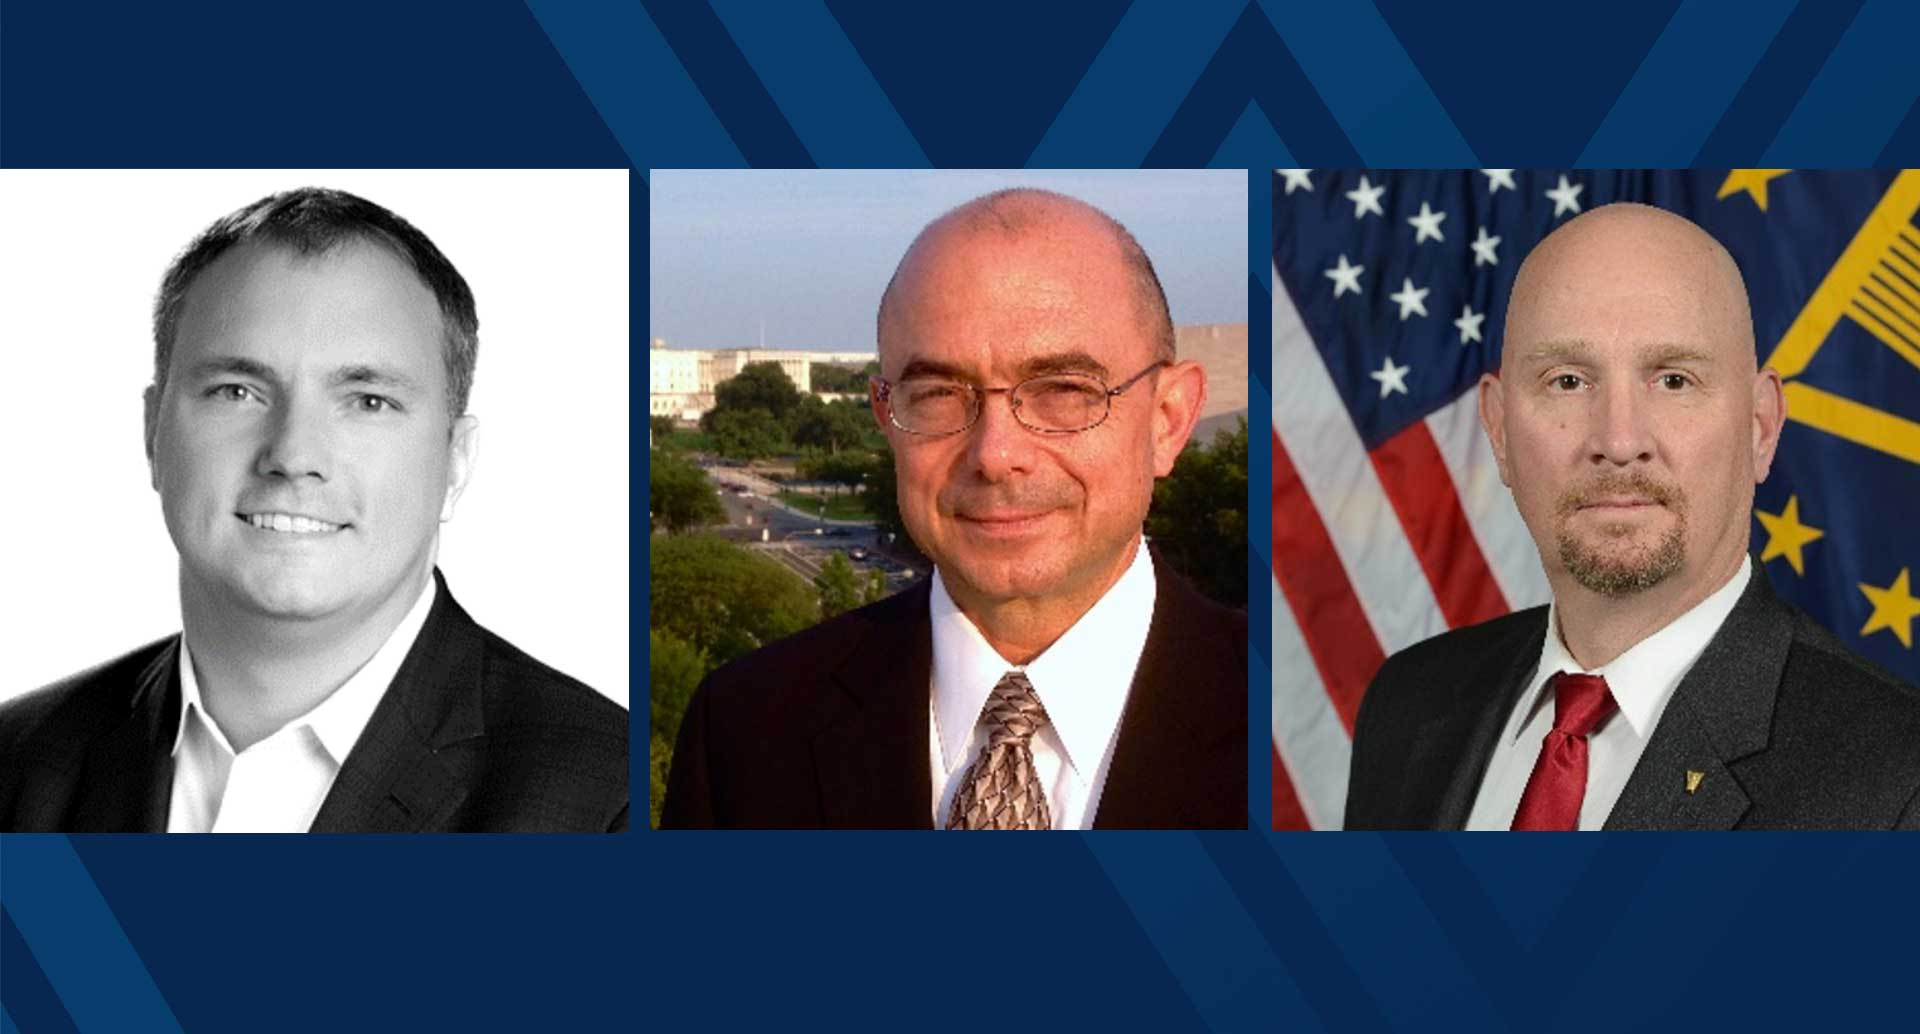 The Statler Collegewill be hosting a virtual panel discussion withcybersecurity experts on Tuesday, April 13 at 5 p.m. Panelists include(pictured left to right) Travis Rosiek, Joseph Brendler and David Mihelcic. (Photos submitted)